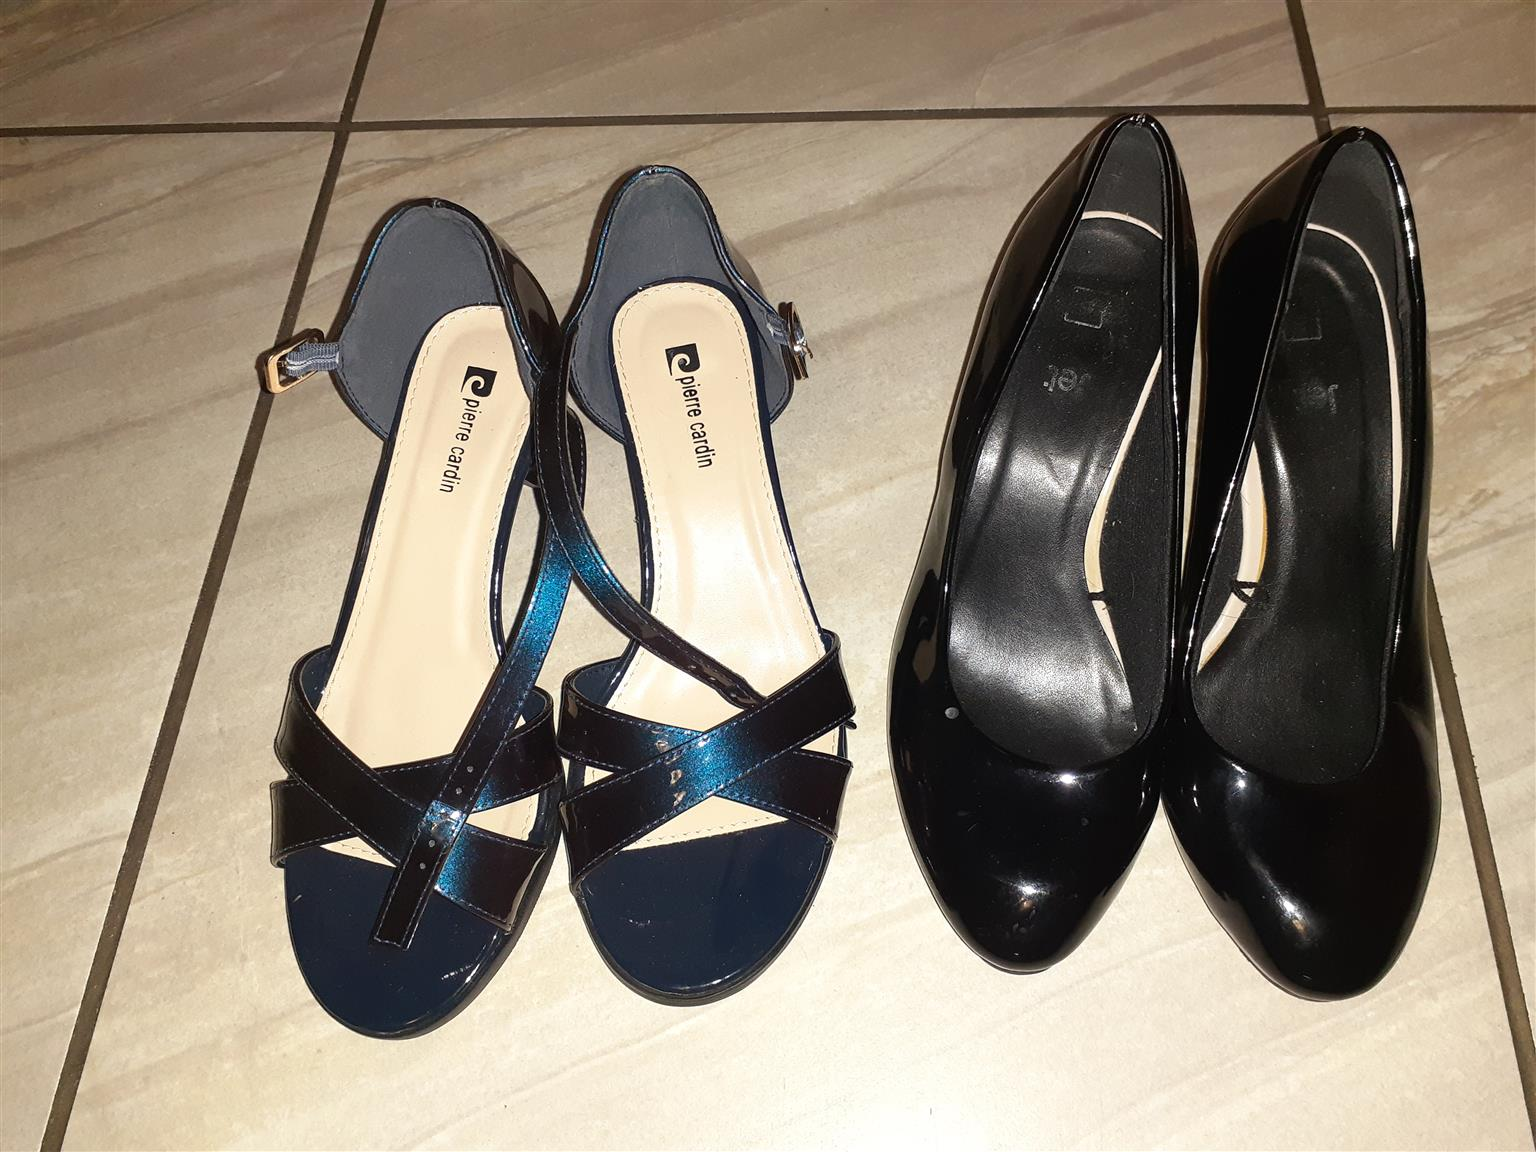 Heels for sale - Good condition